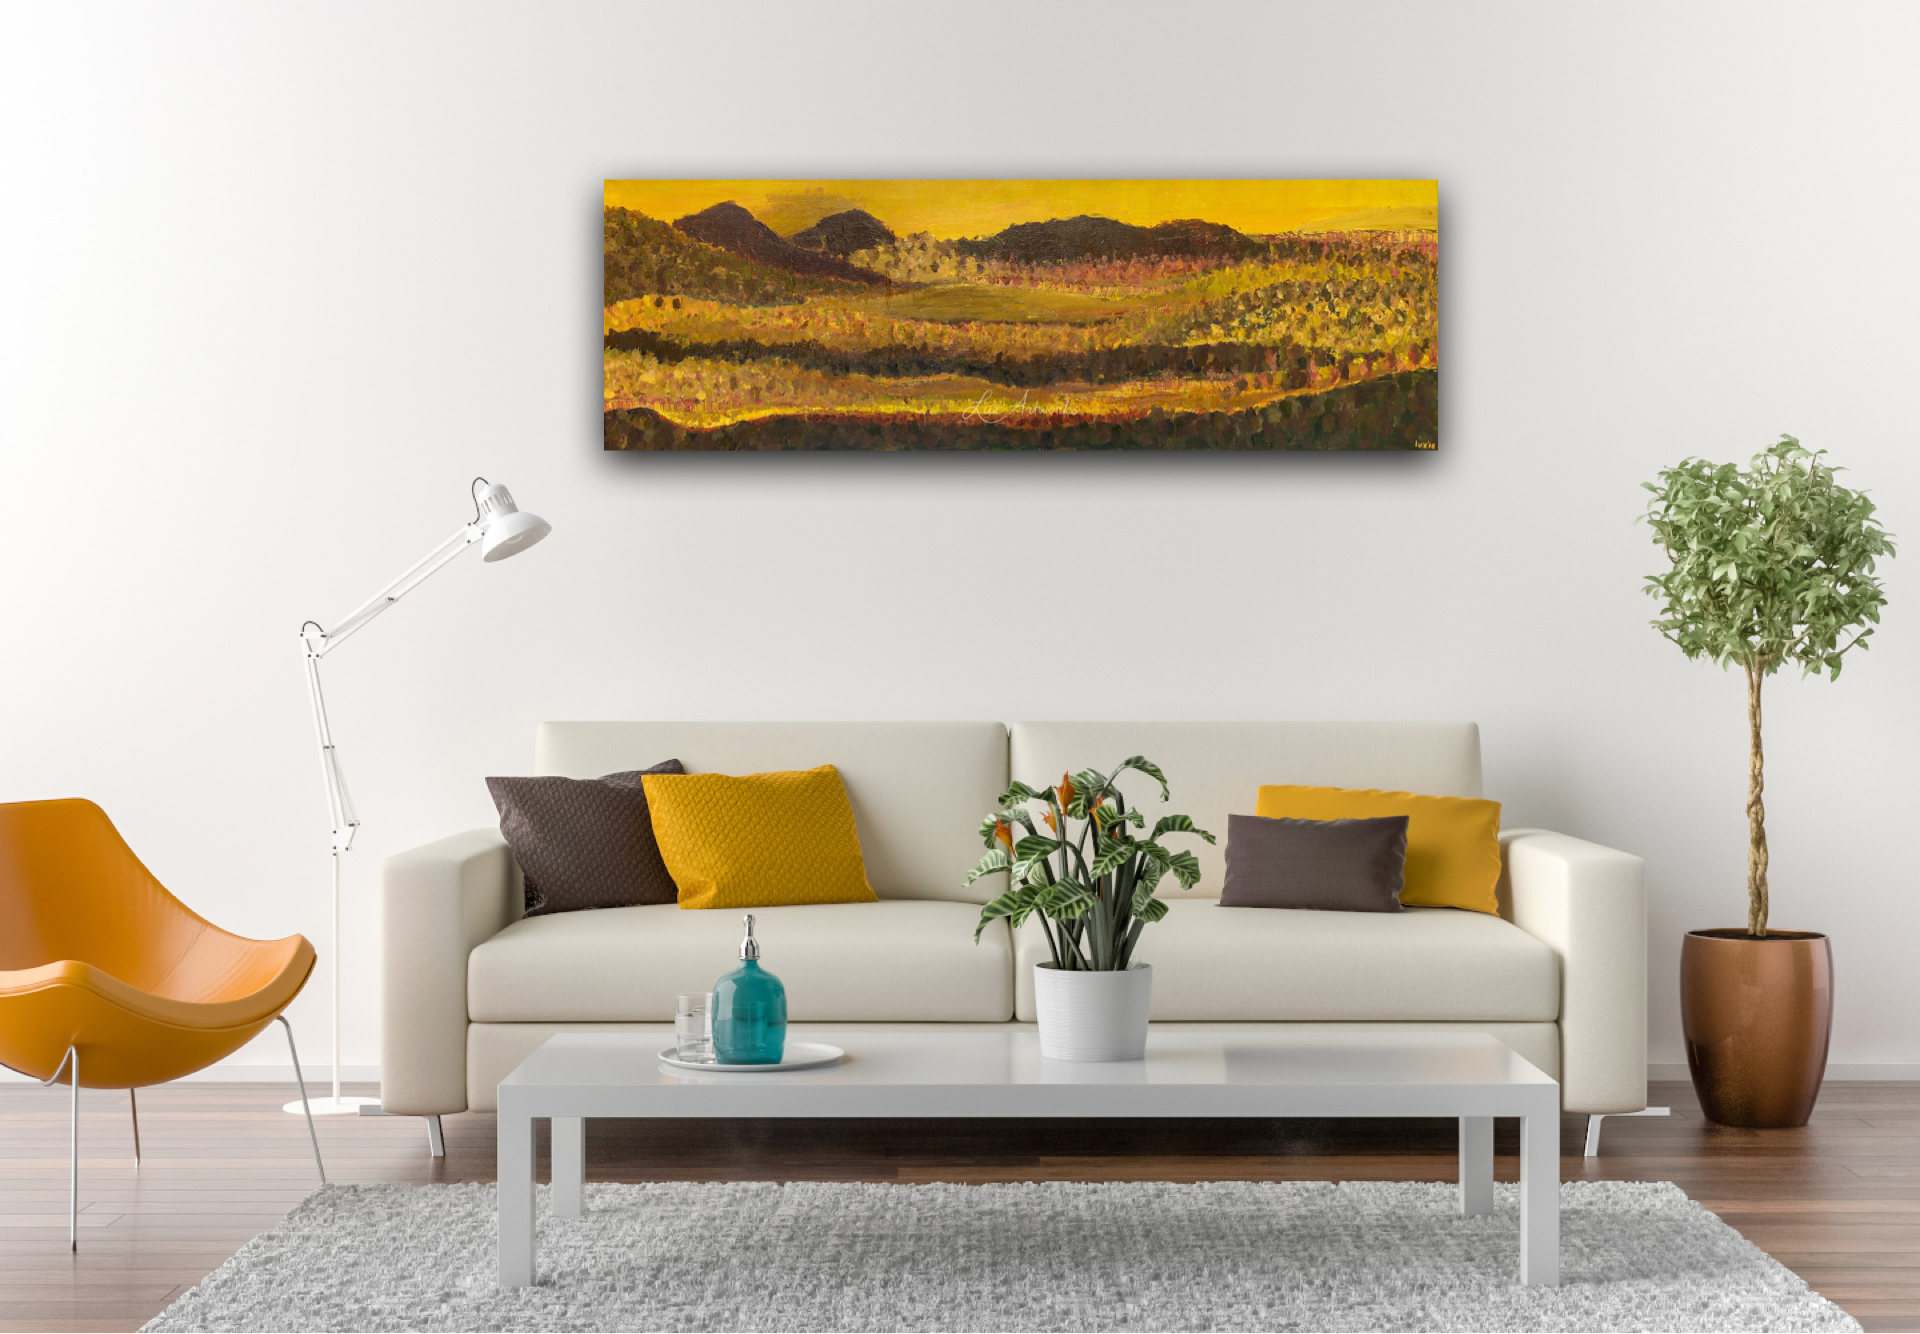 In the Hills Wall - Painting by Luz Artworks Marloes Bloedjes